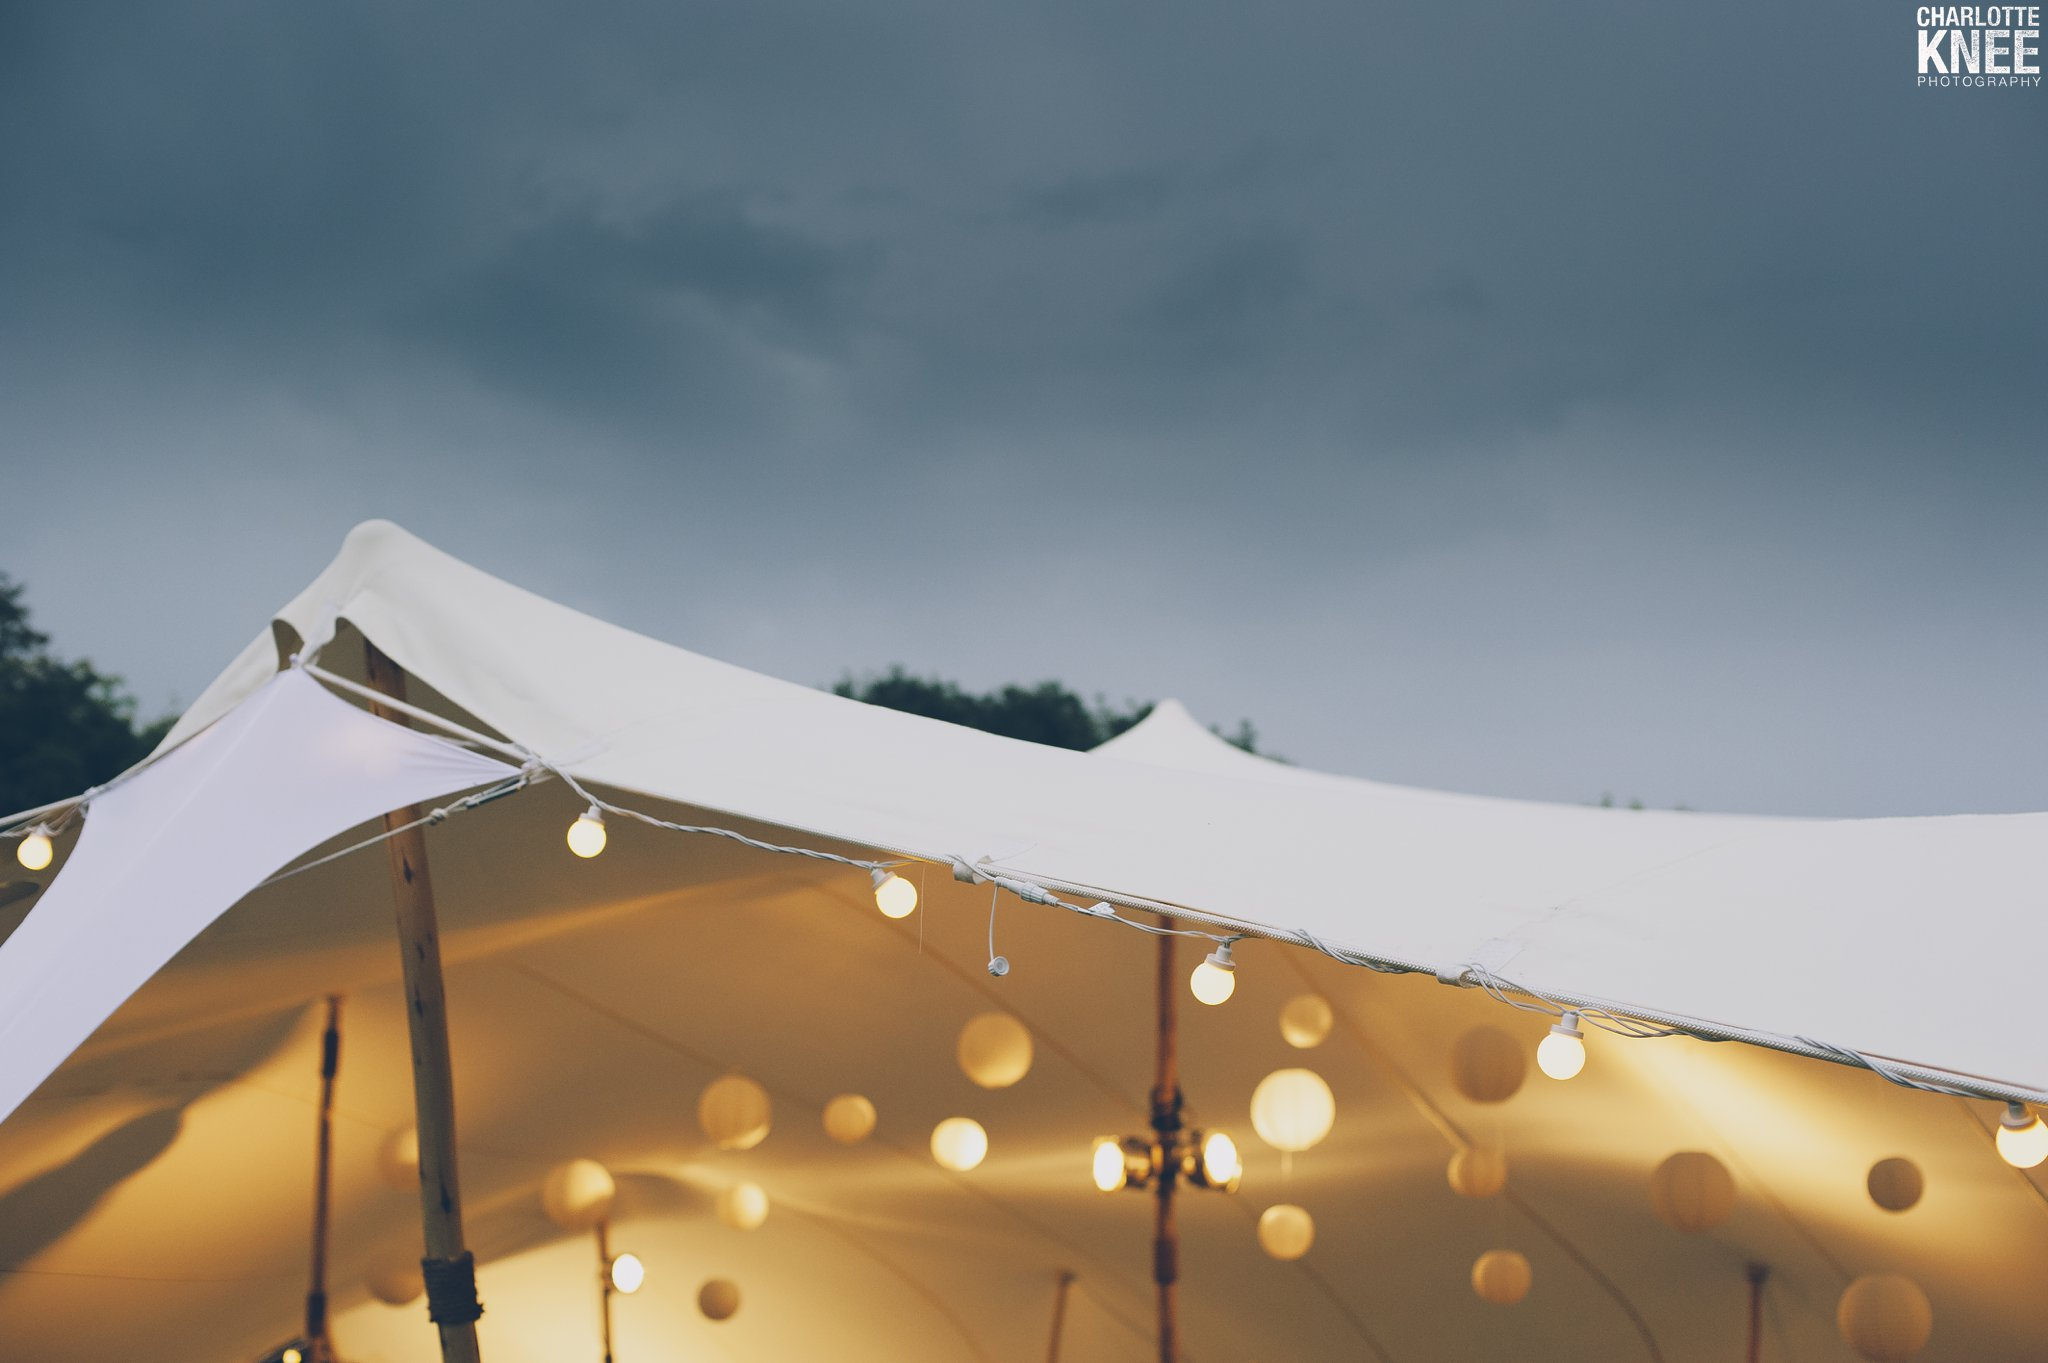 4Elements Tents Stretch Tent Kent Wedding Charlotte Knee Photography_0009.jpg & Charlotte Knee Photography » Kent lifestyle photographer with a ...